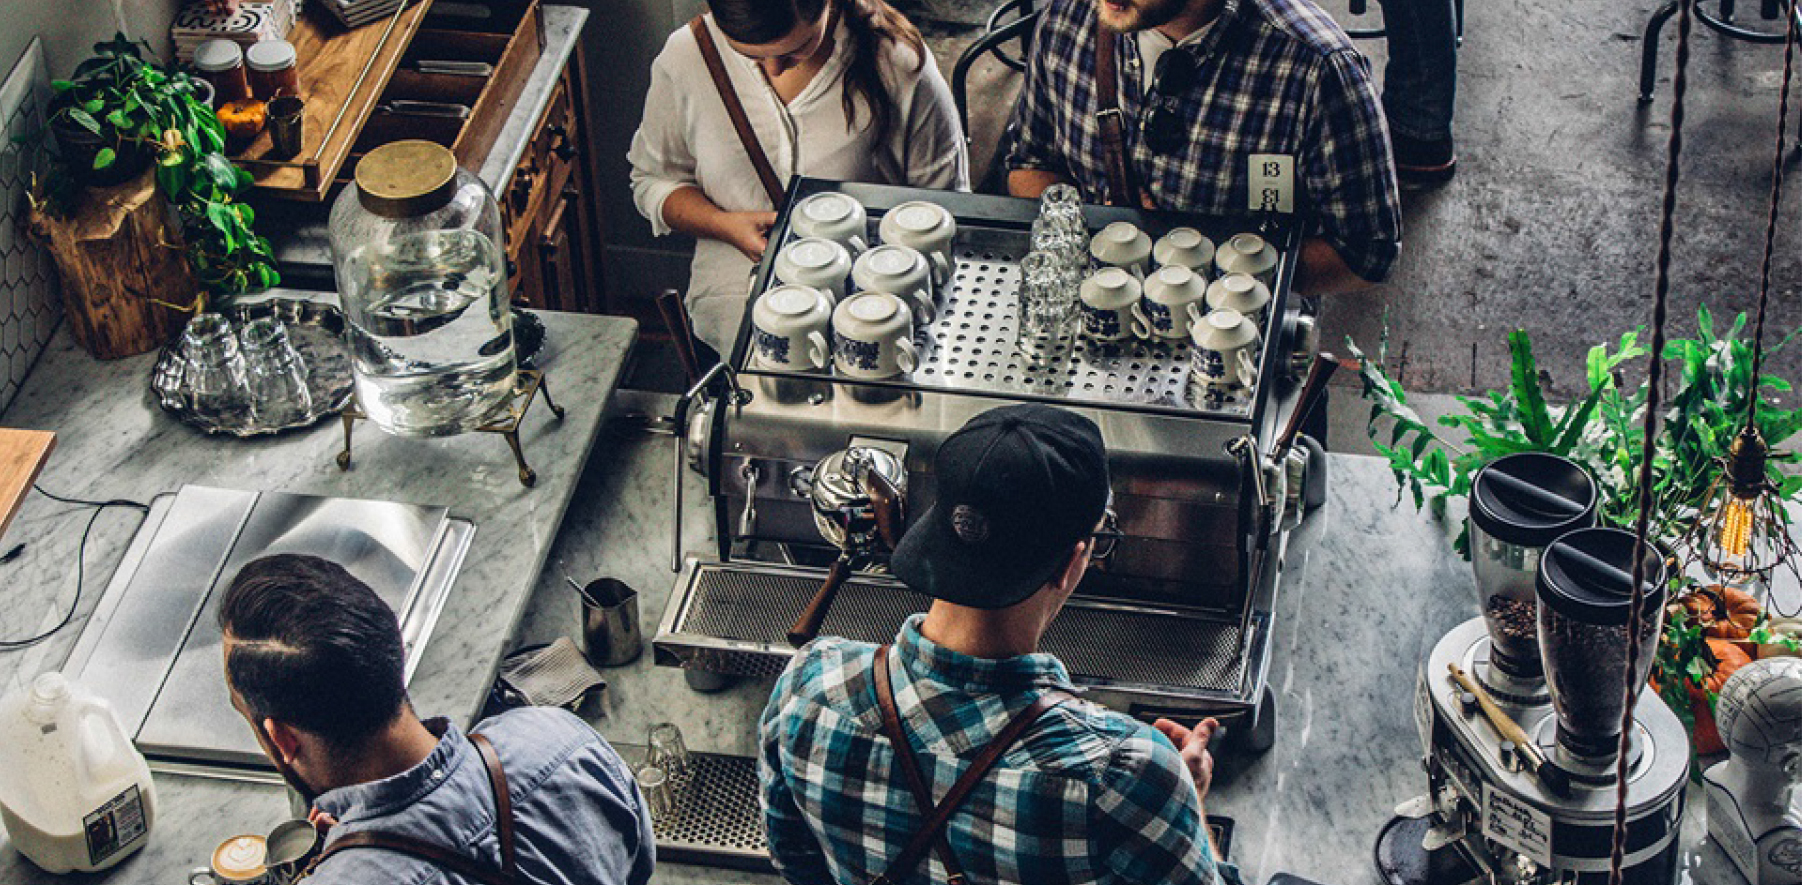 Why small businesses need product liability insurance. - Steadfa